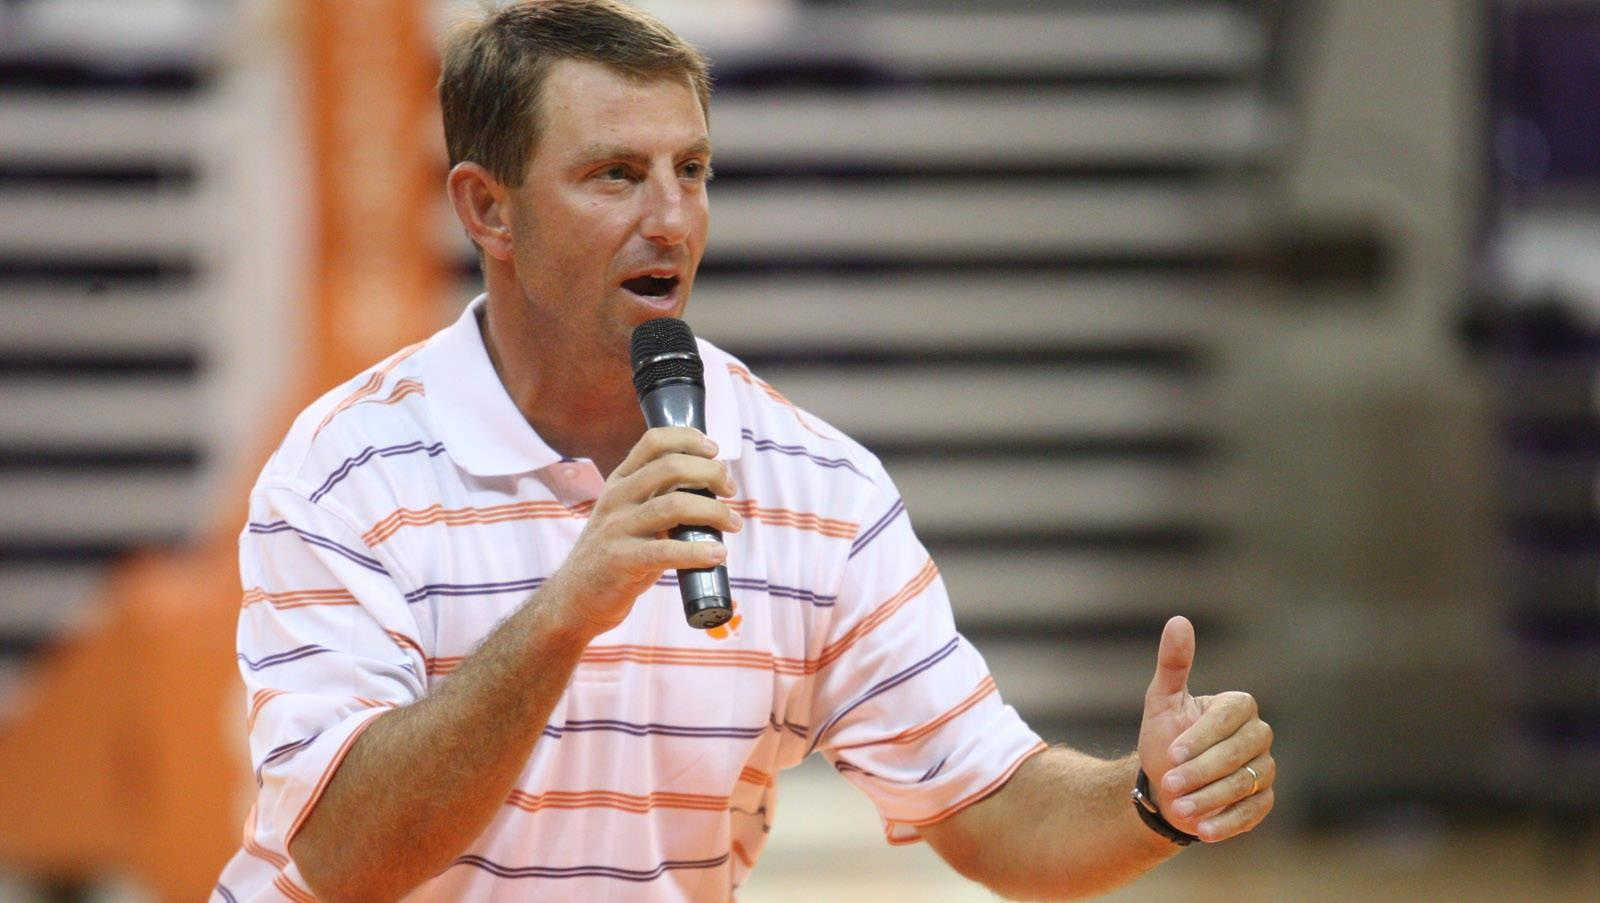 ClemsonTigers.com Exclusive: Coaches Share Lunch with Freshmen